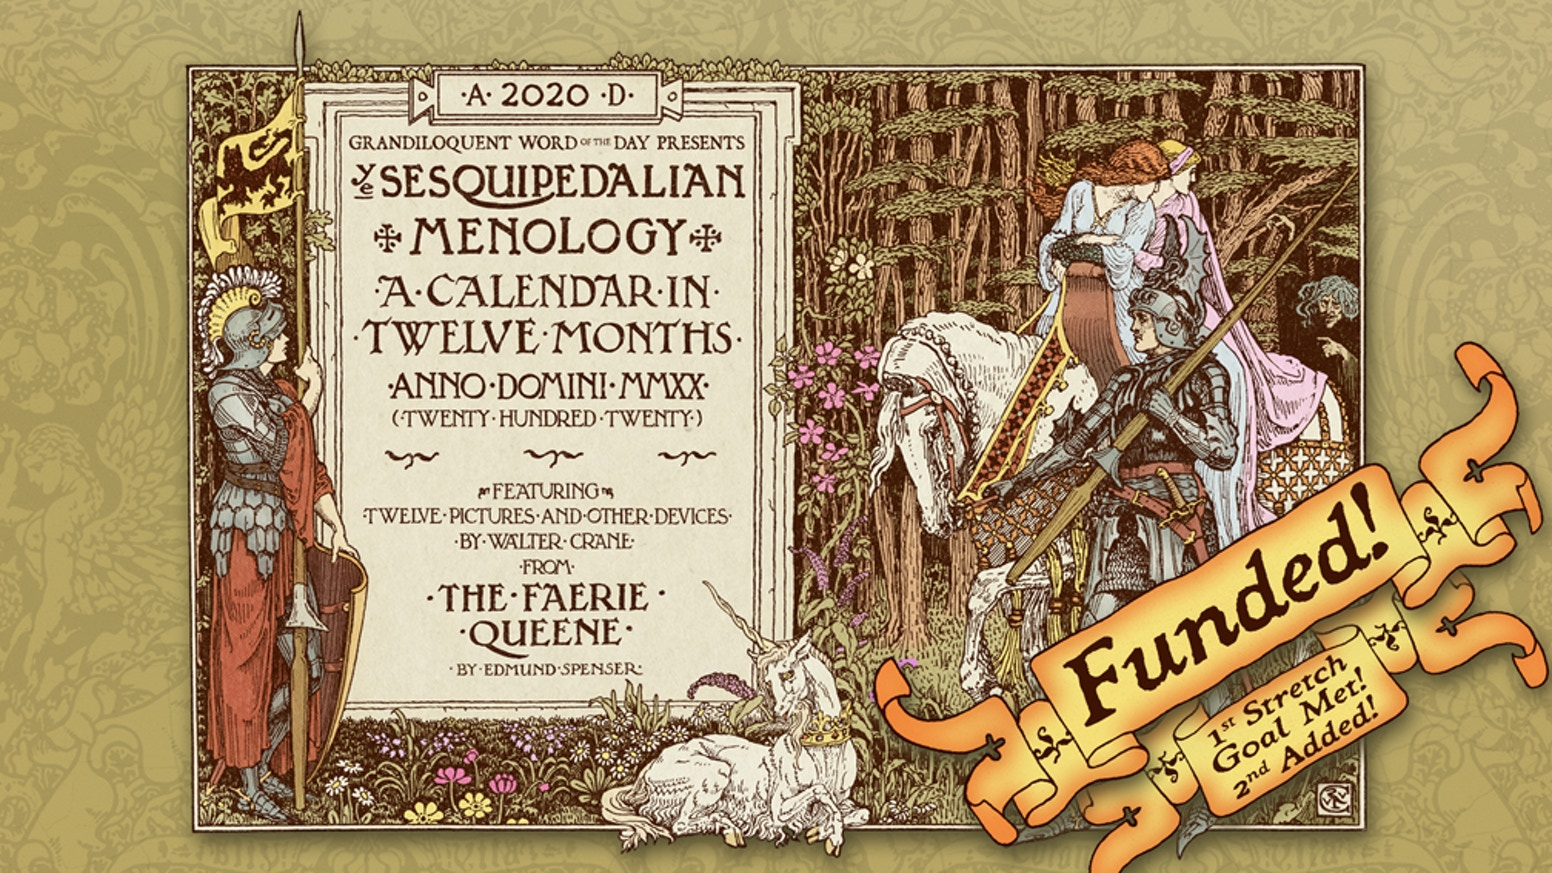 Now available to order! A splendid calendar full of grandiloquent words with definitions, vintage illustrations, daily holidays, and solar & lunar charts...plus bookmarks, bookplates, and perpetual desk calendars!